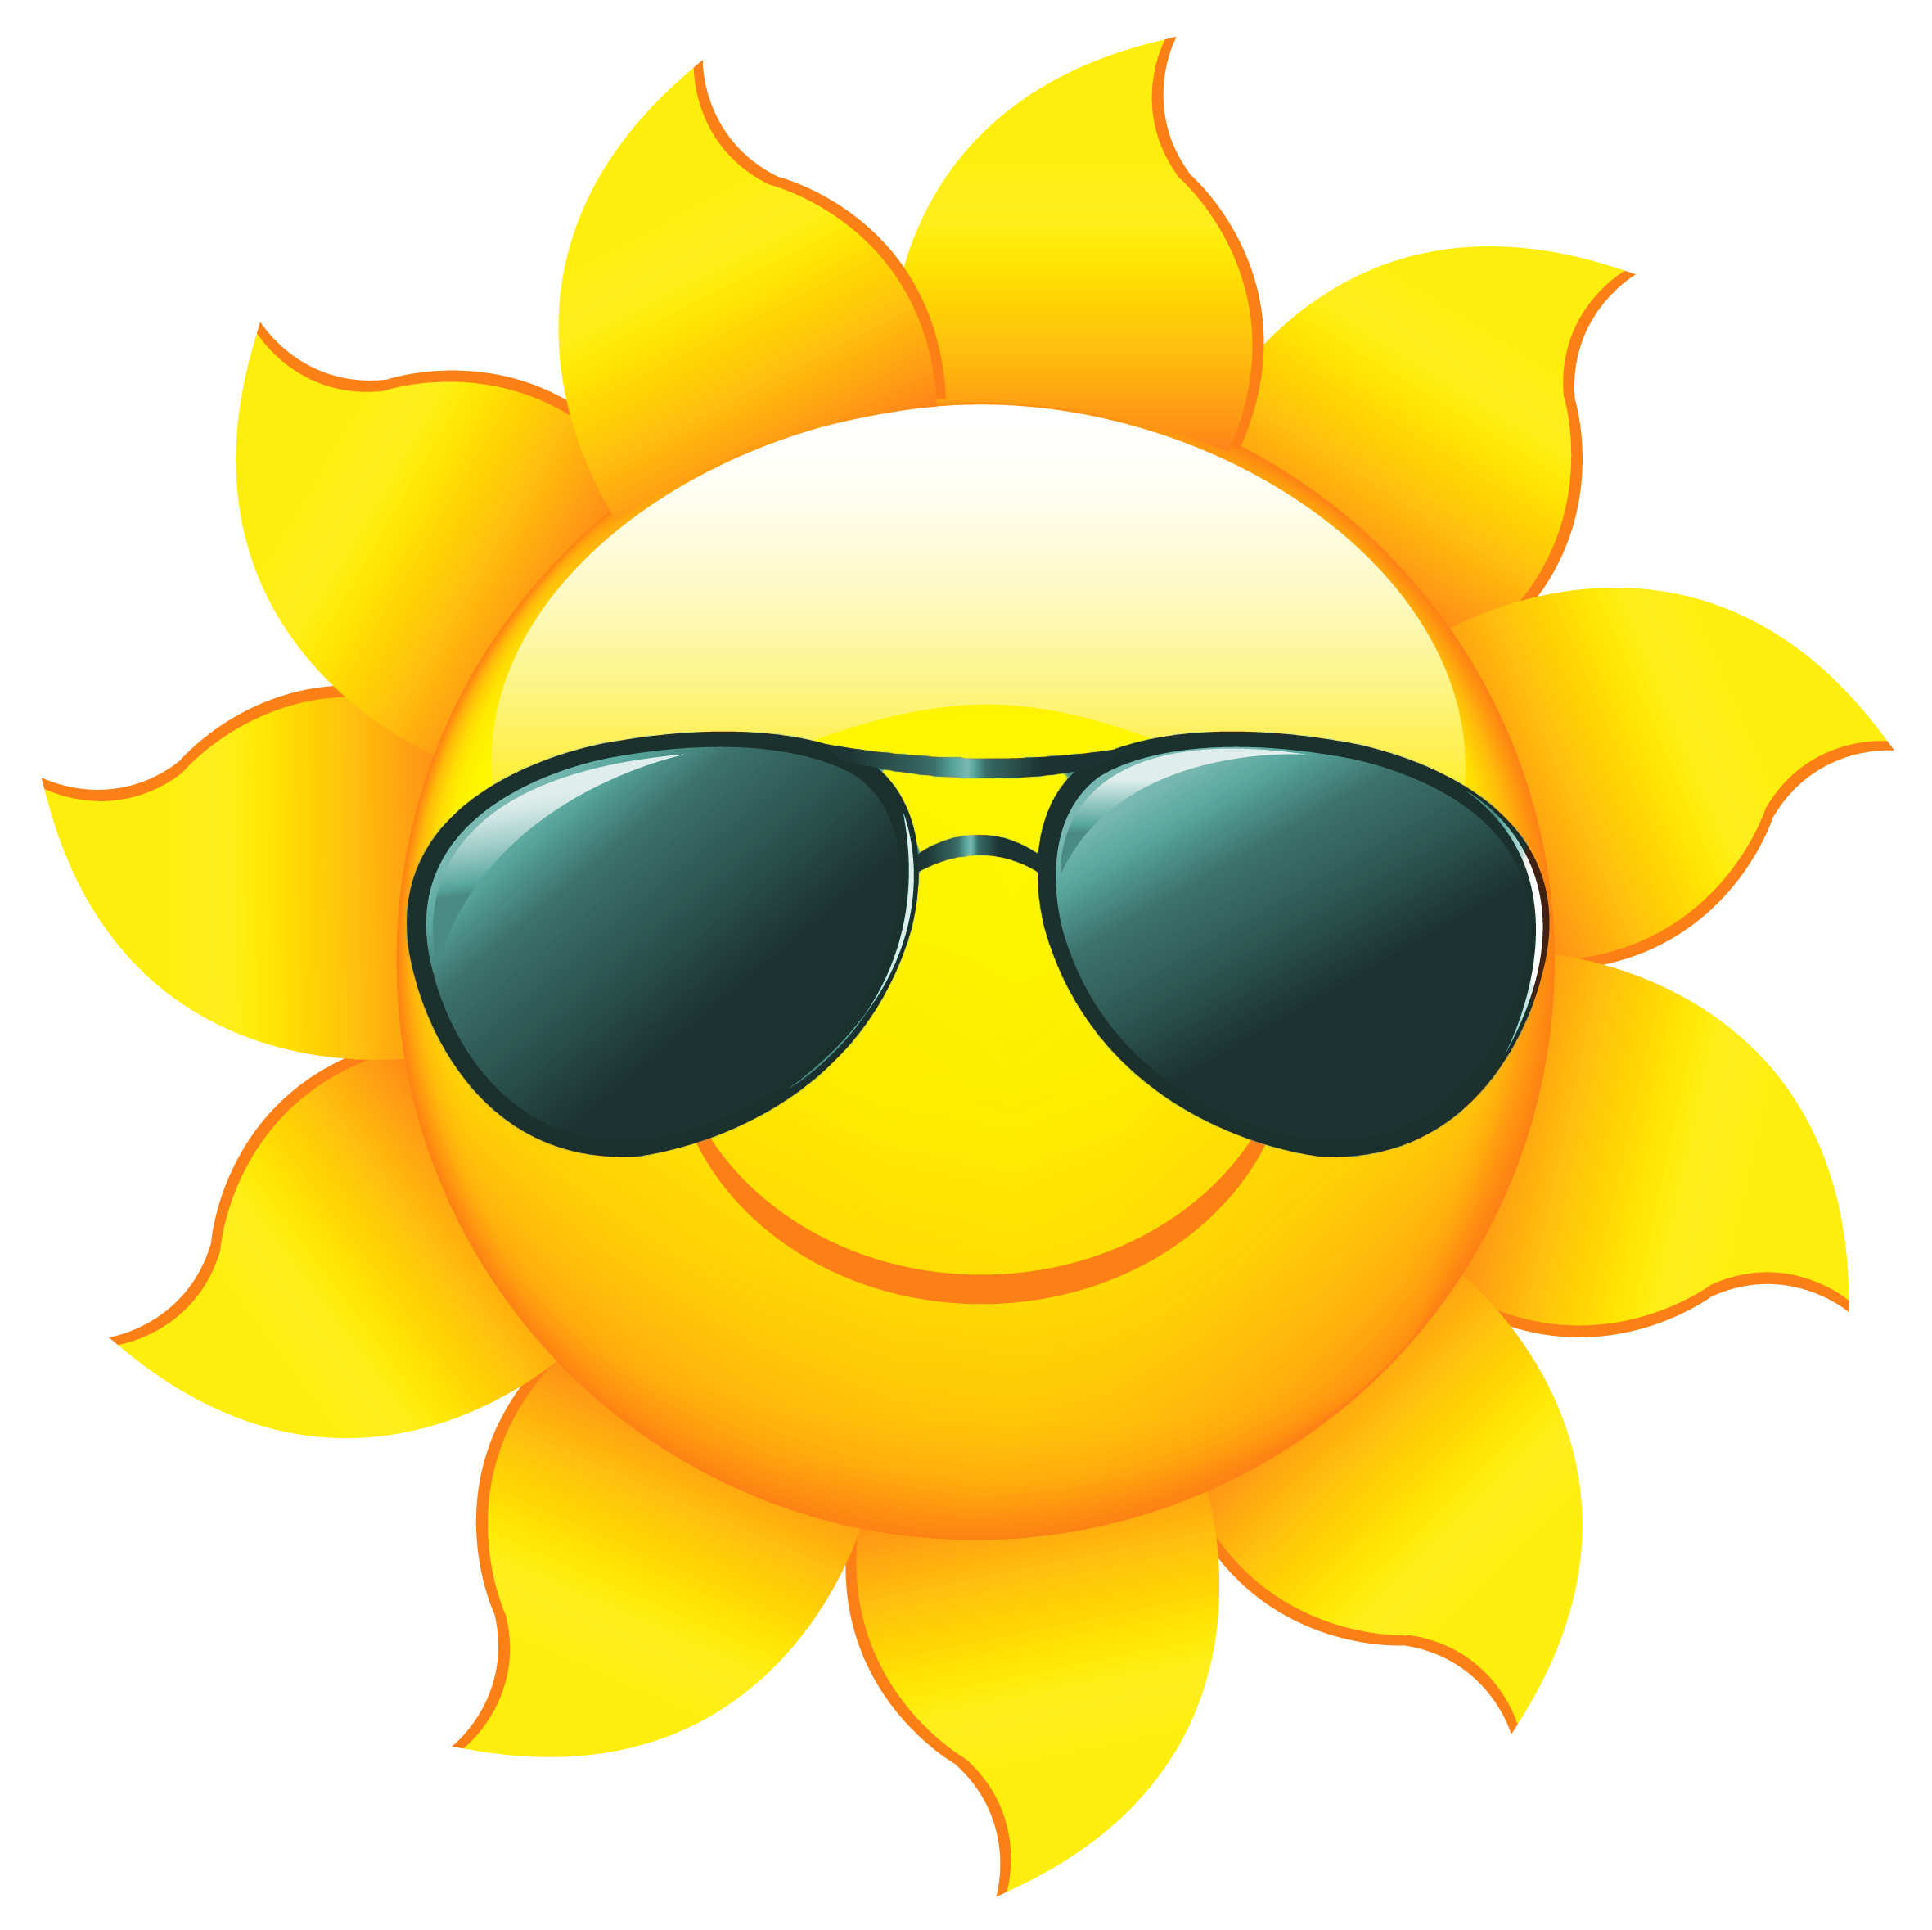 Sun clipart #4, Download drawings